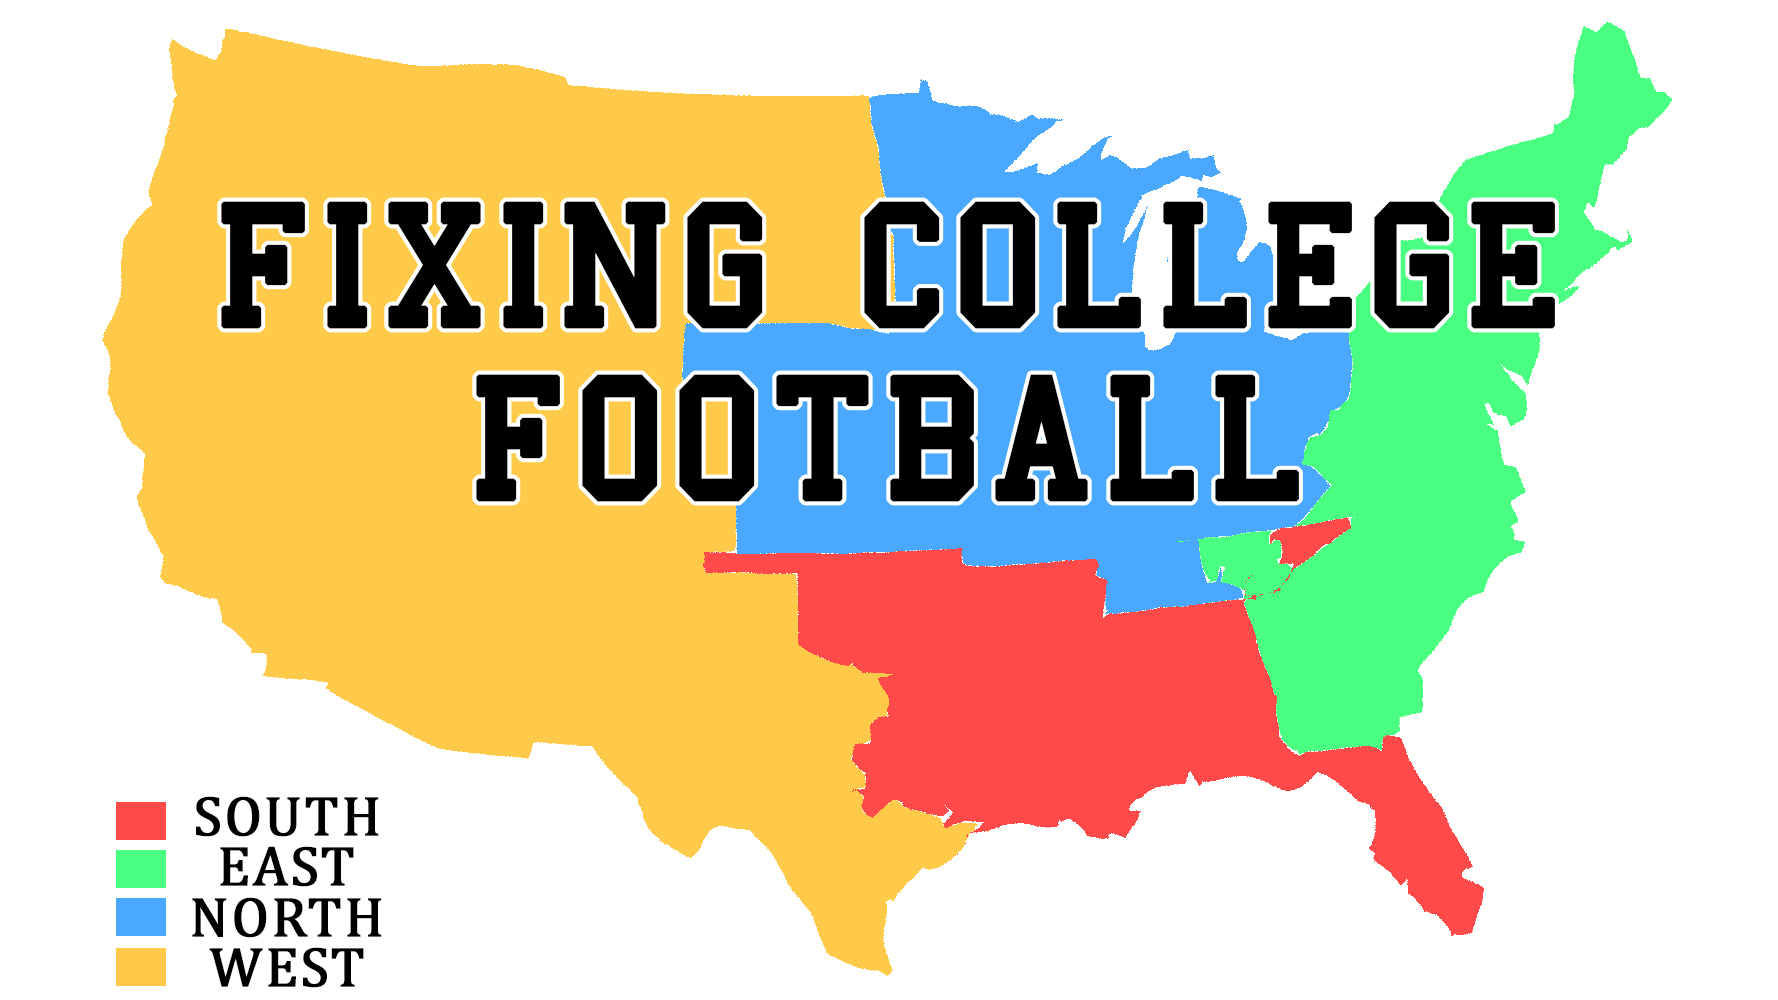 Improve College Football By Realigning Conferences And Adding